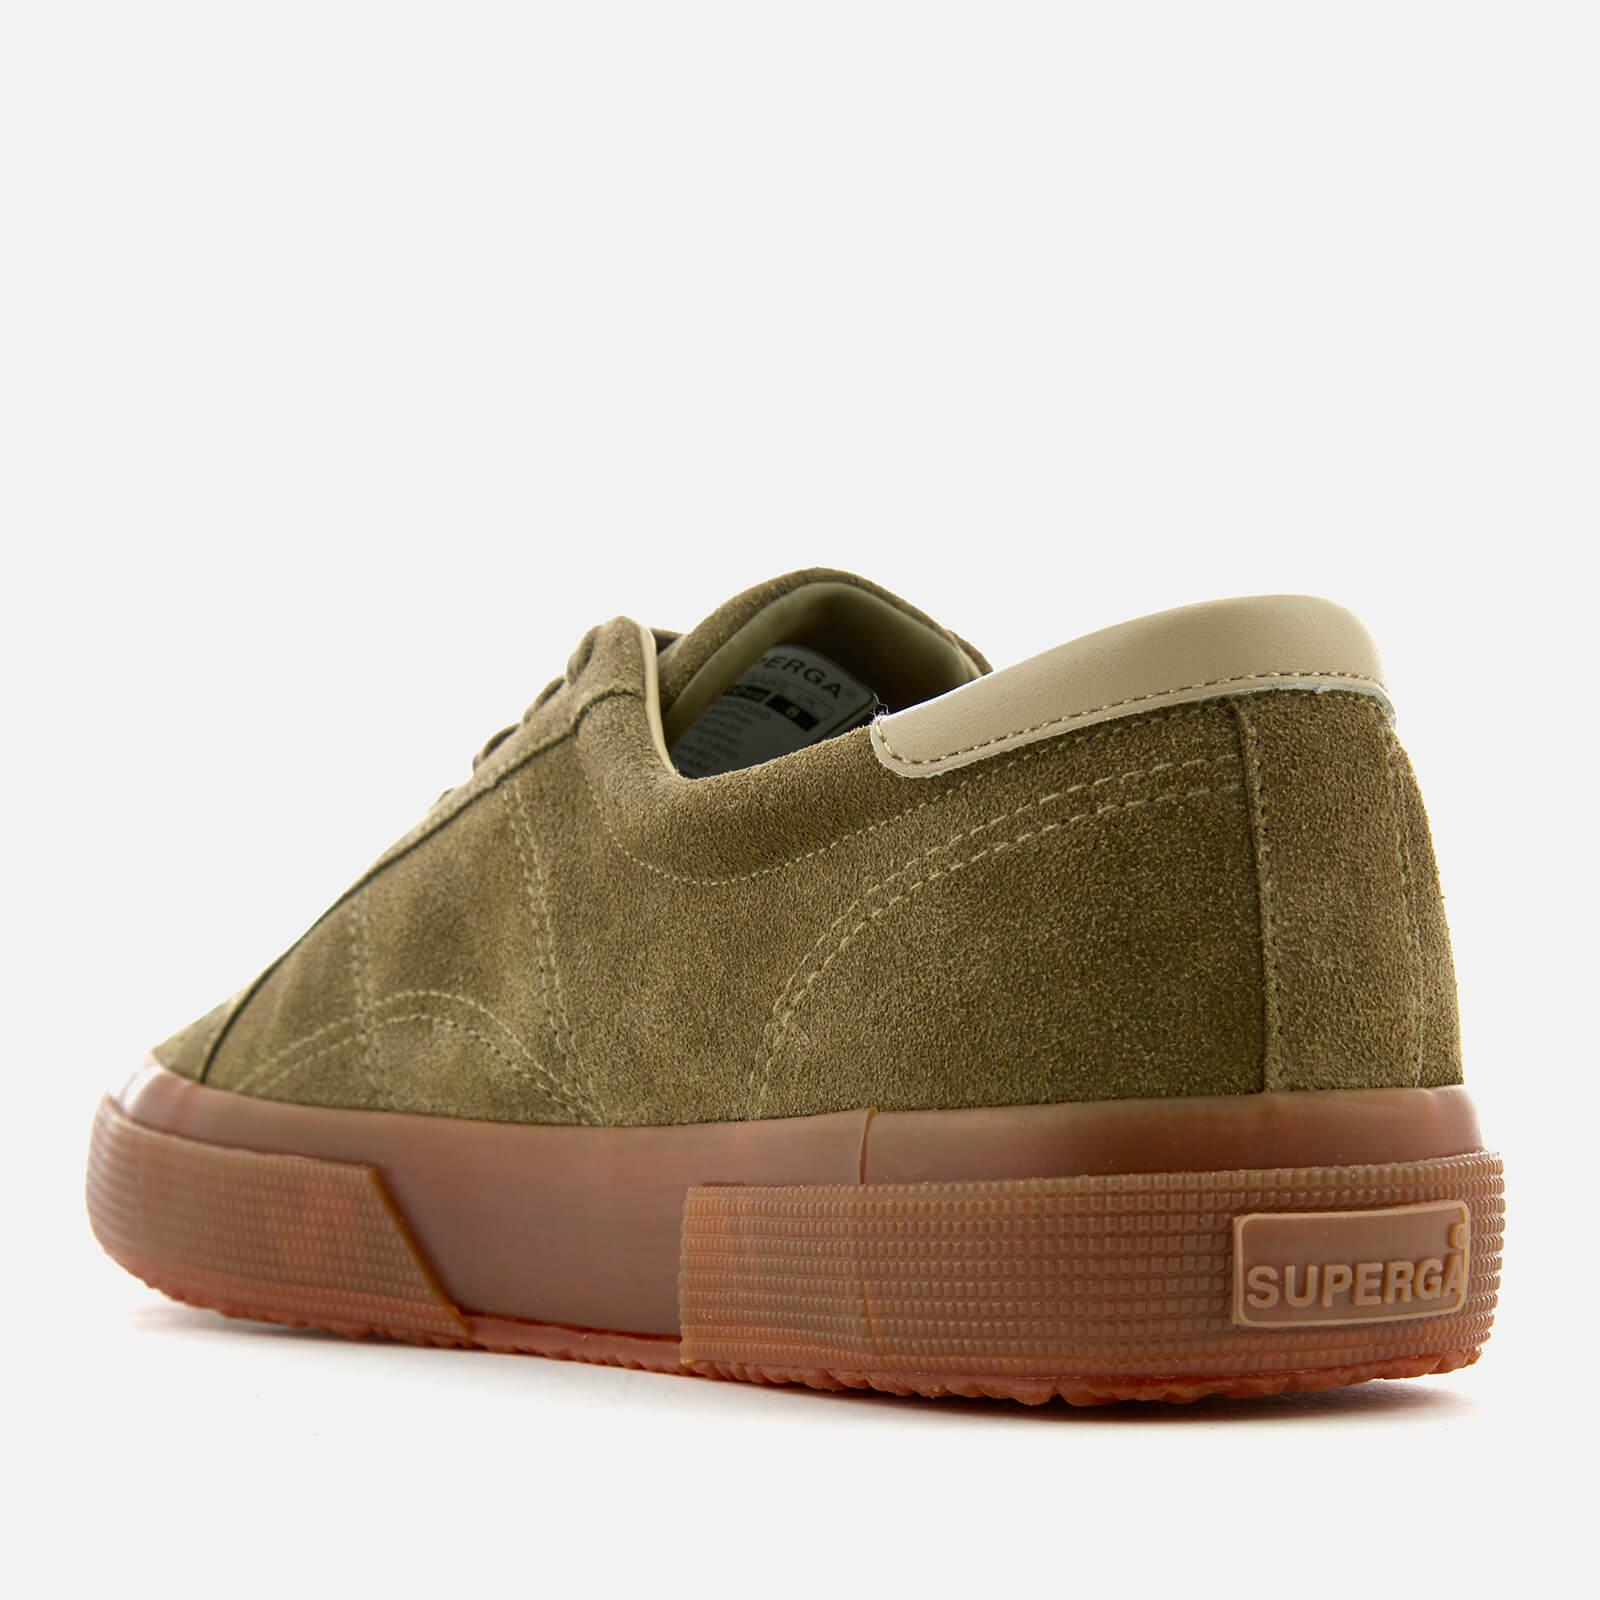 Superga 2386 Suede Fgl Trainers in Green for Men